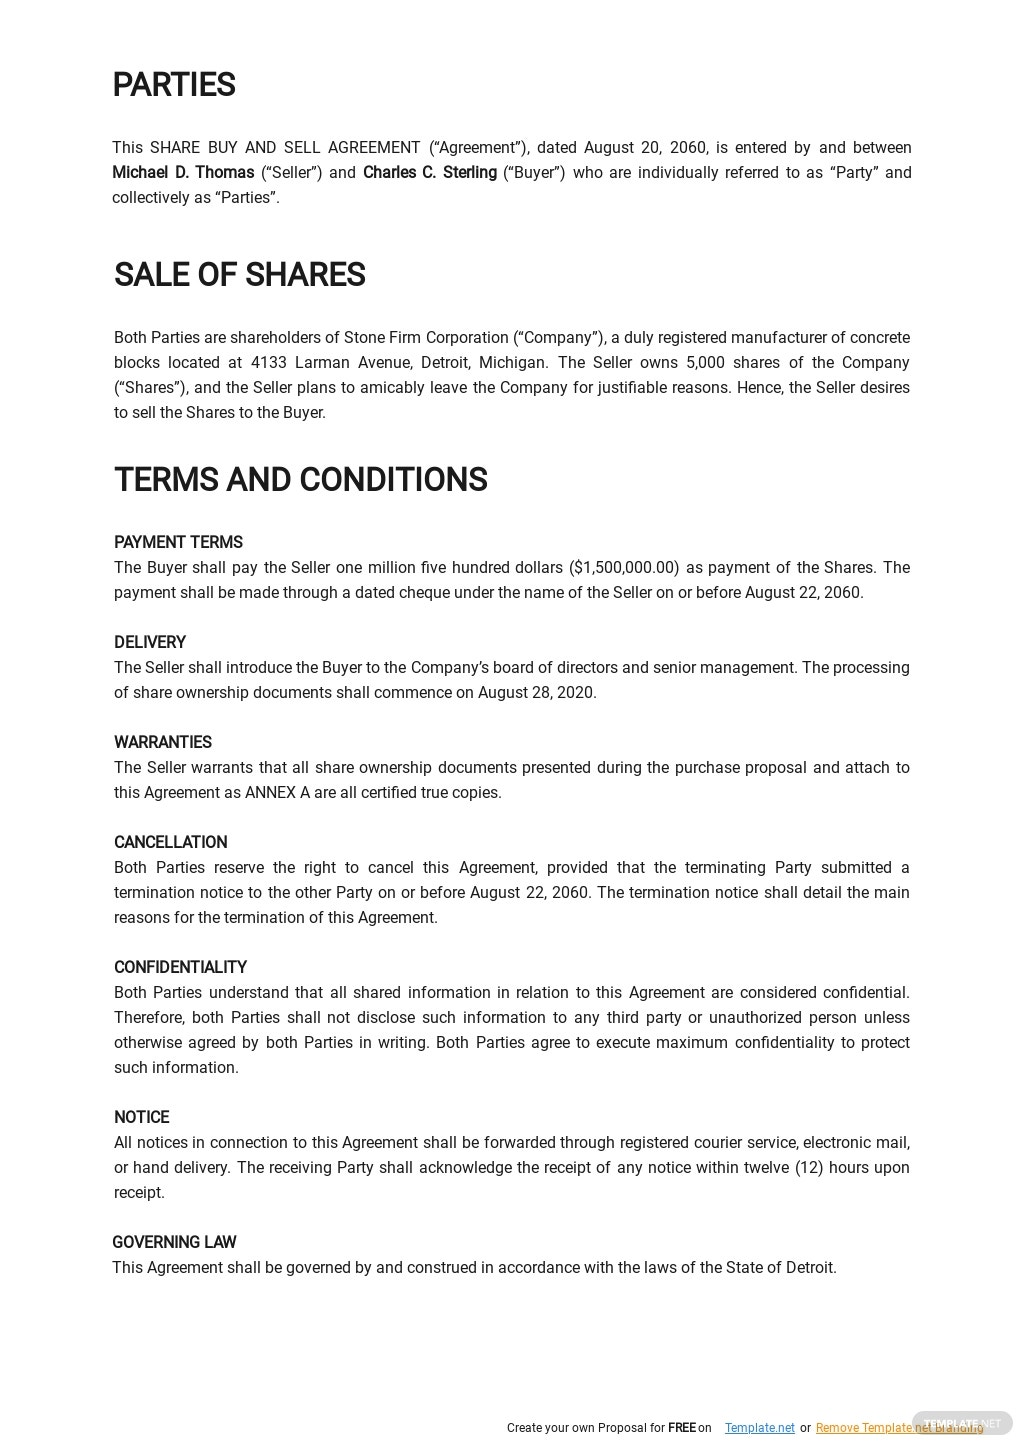 Share Buy Sell Agreement Template 1.jpe